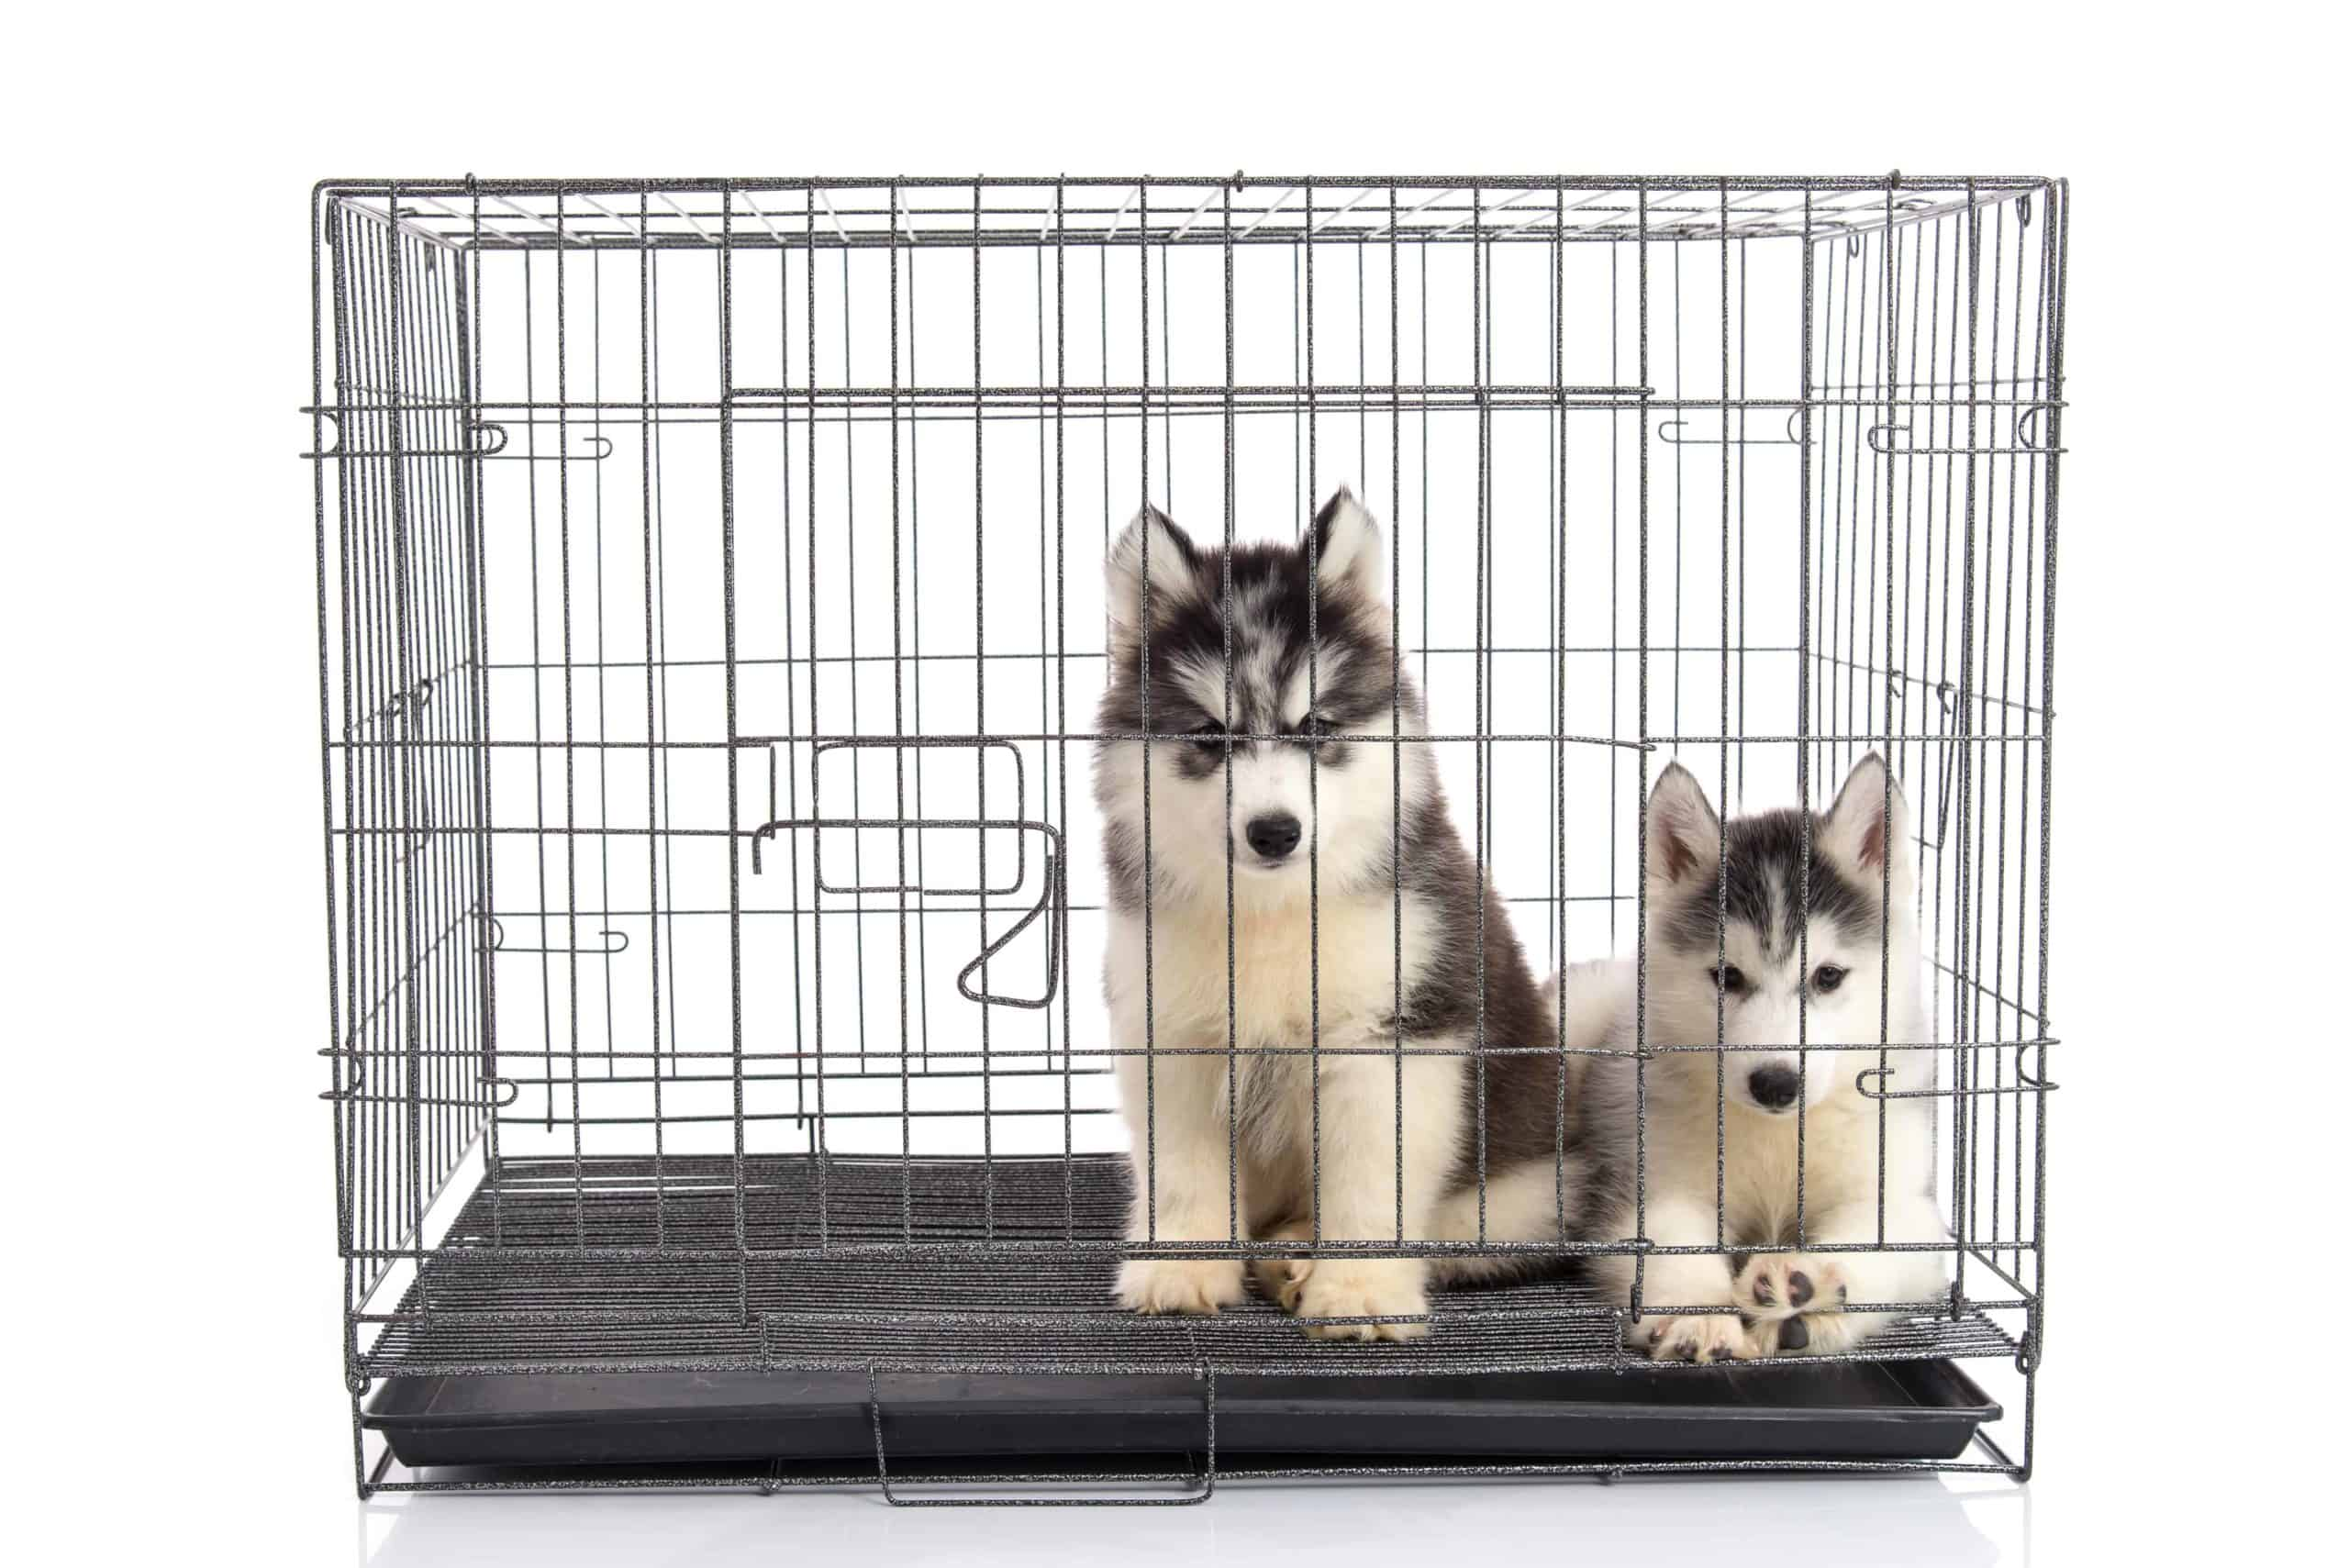 Two Husky puppies snuggle in a metal crate.